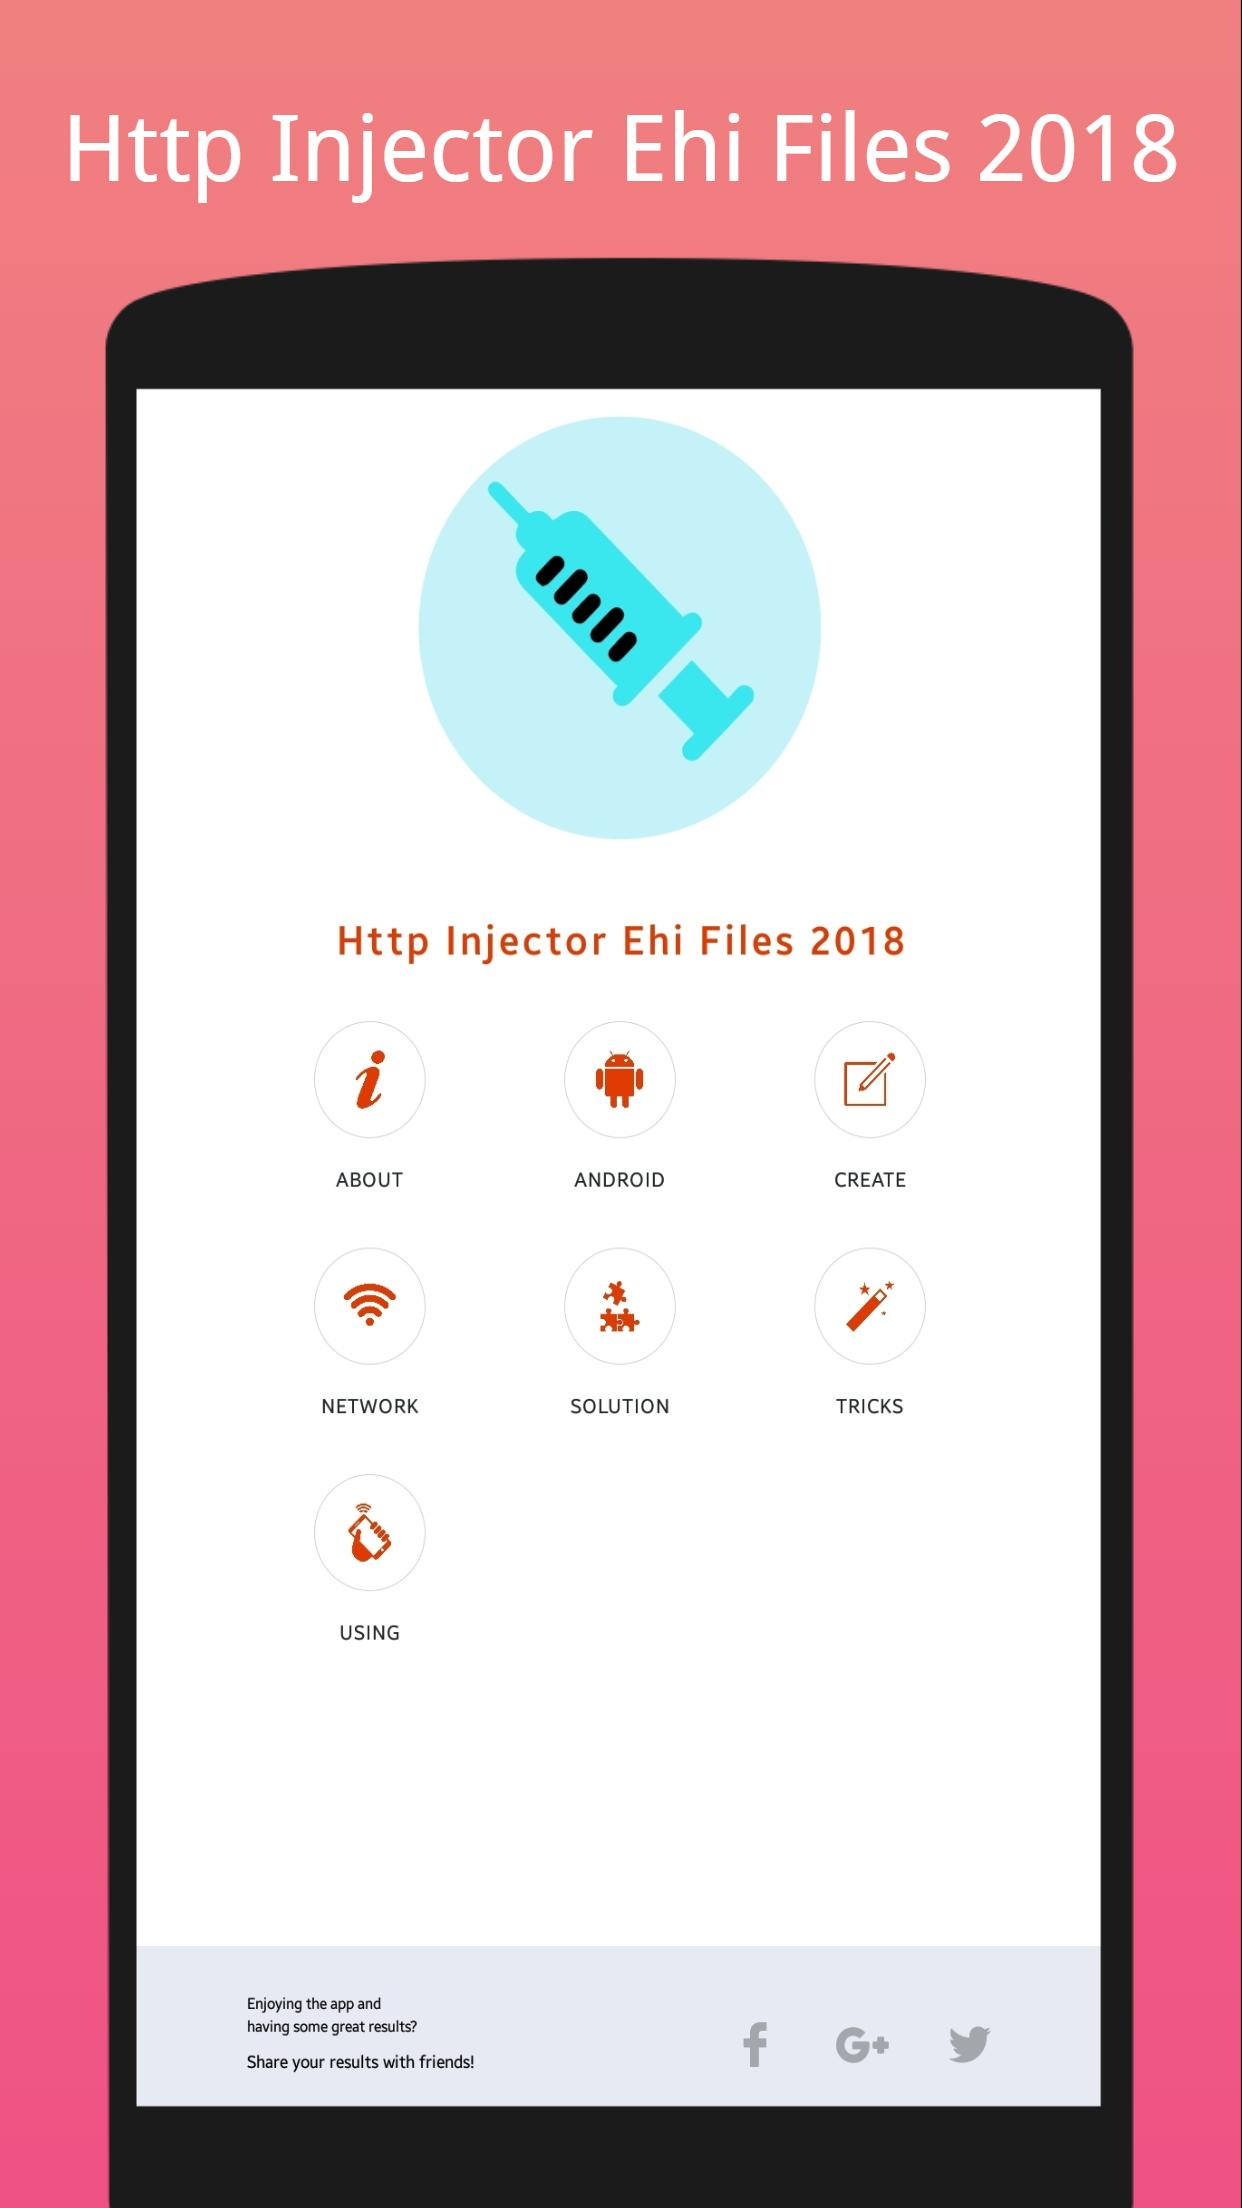 Http Injector Ehi Files 2018 for Android - APK Download